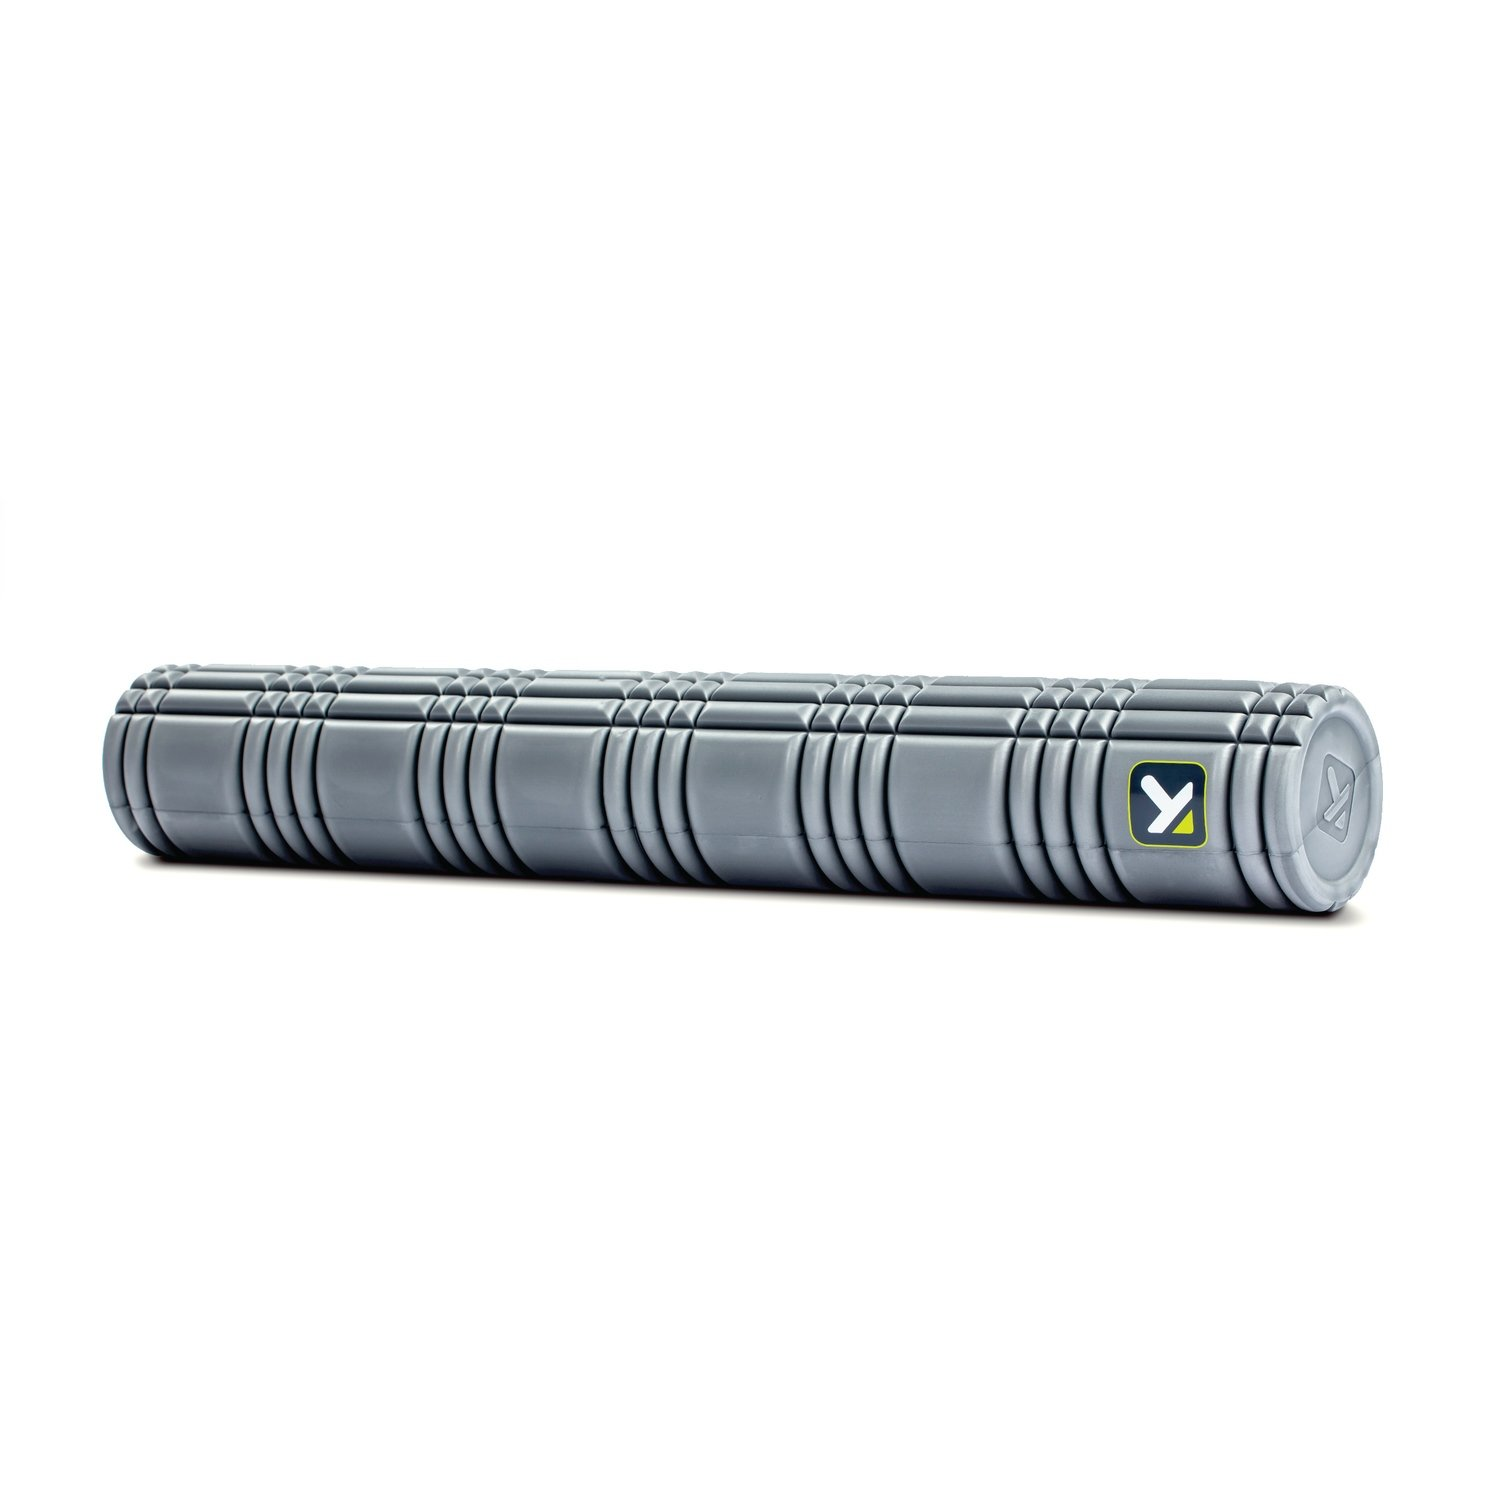 Trigger Point Core Multi Density Solid Foam Roller 36""